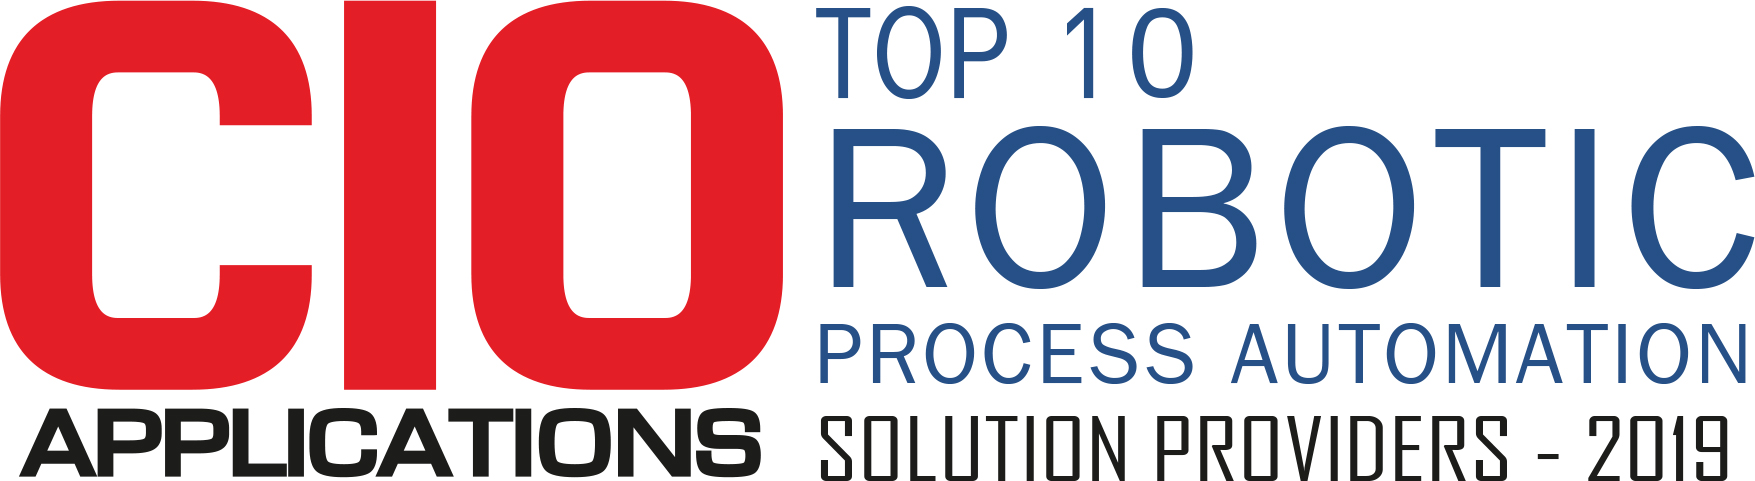 Top 10 Robotic Process Automation Solution Companies - 2019